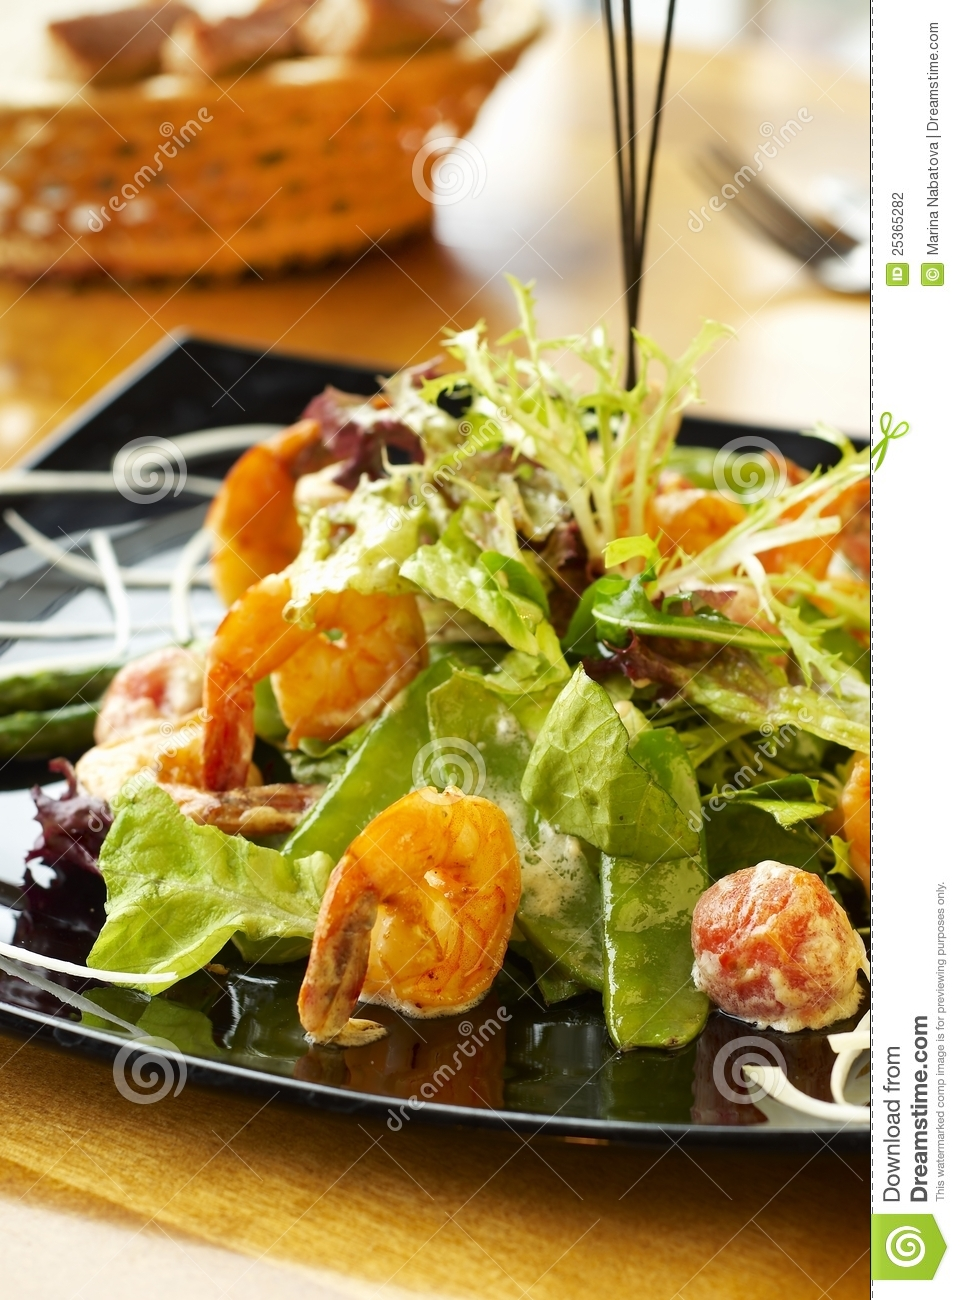 Salad with green peas, cherry tomatoes, shrimps and cheese.